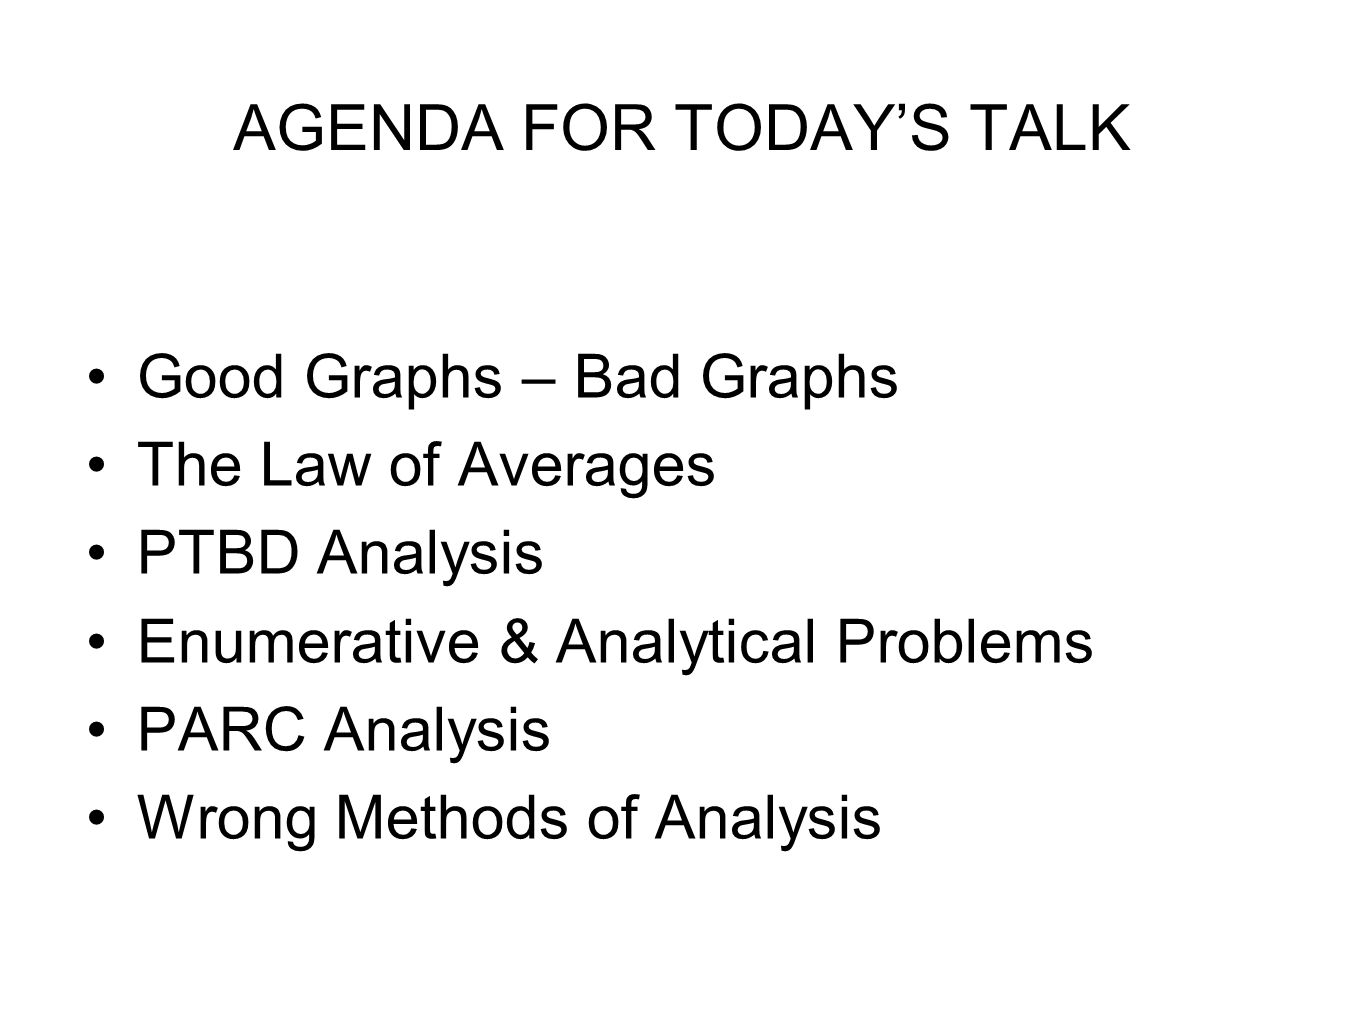 AGENDA FOR TODAY'S TALK Good Graphs – Bad Graphs The Law of Averages PTBD Analysis Enumerative & Analytical Problems PARC Analysis Wrong Methods of Analysis